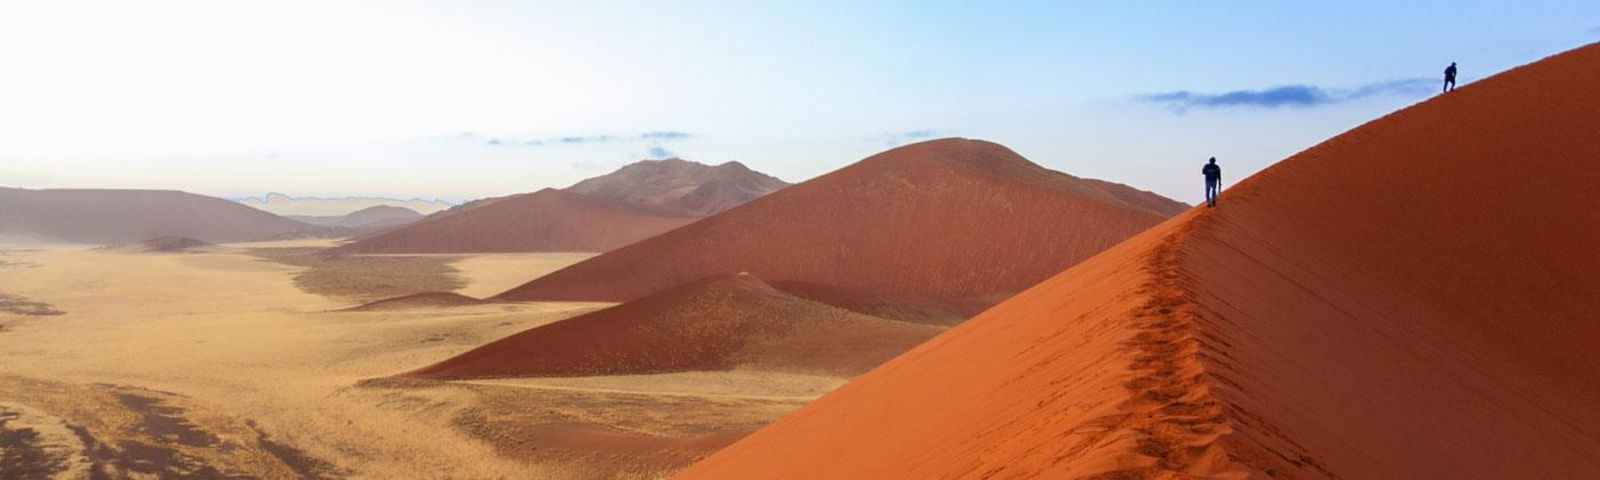 Namibia Tours - Things to do in Namibia